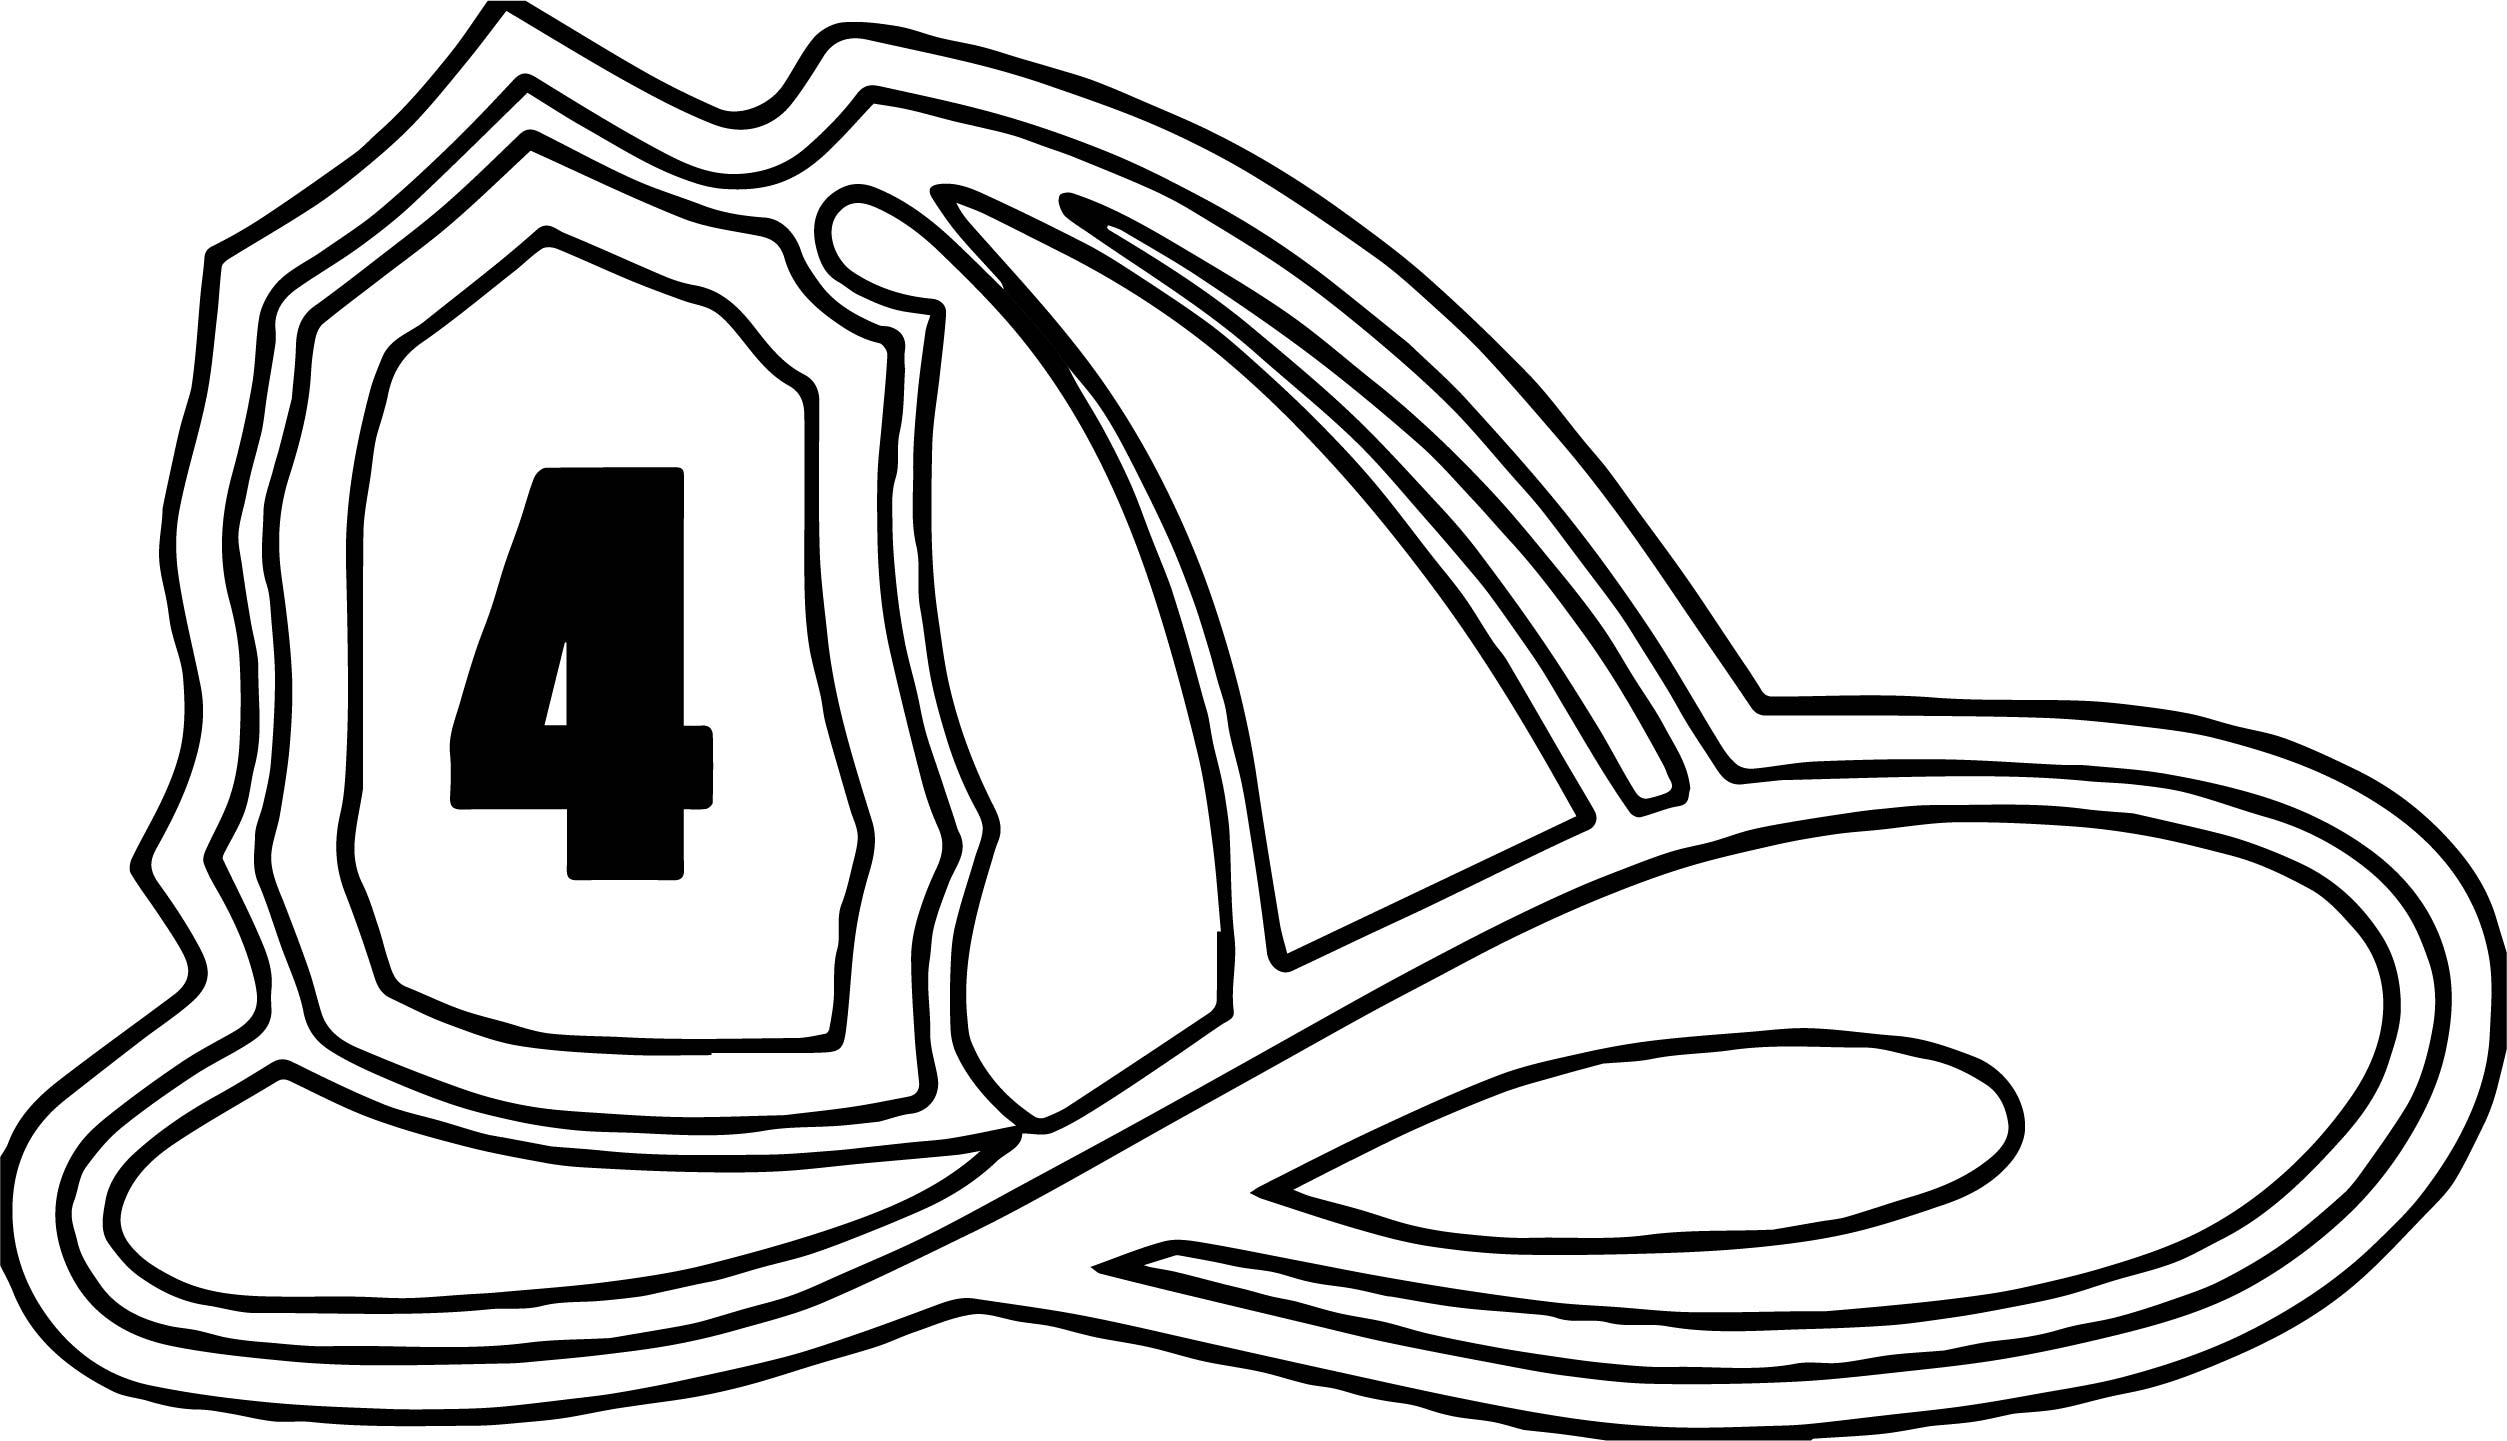 Fire Truck Hat Coloring Page | Wecoloringpage.com